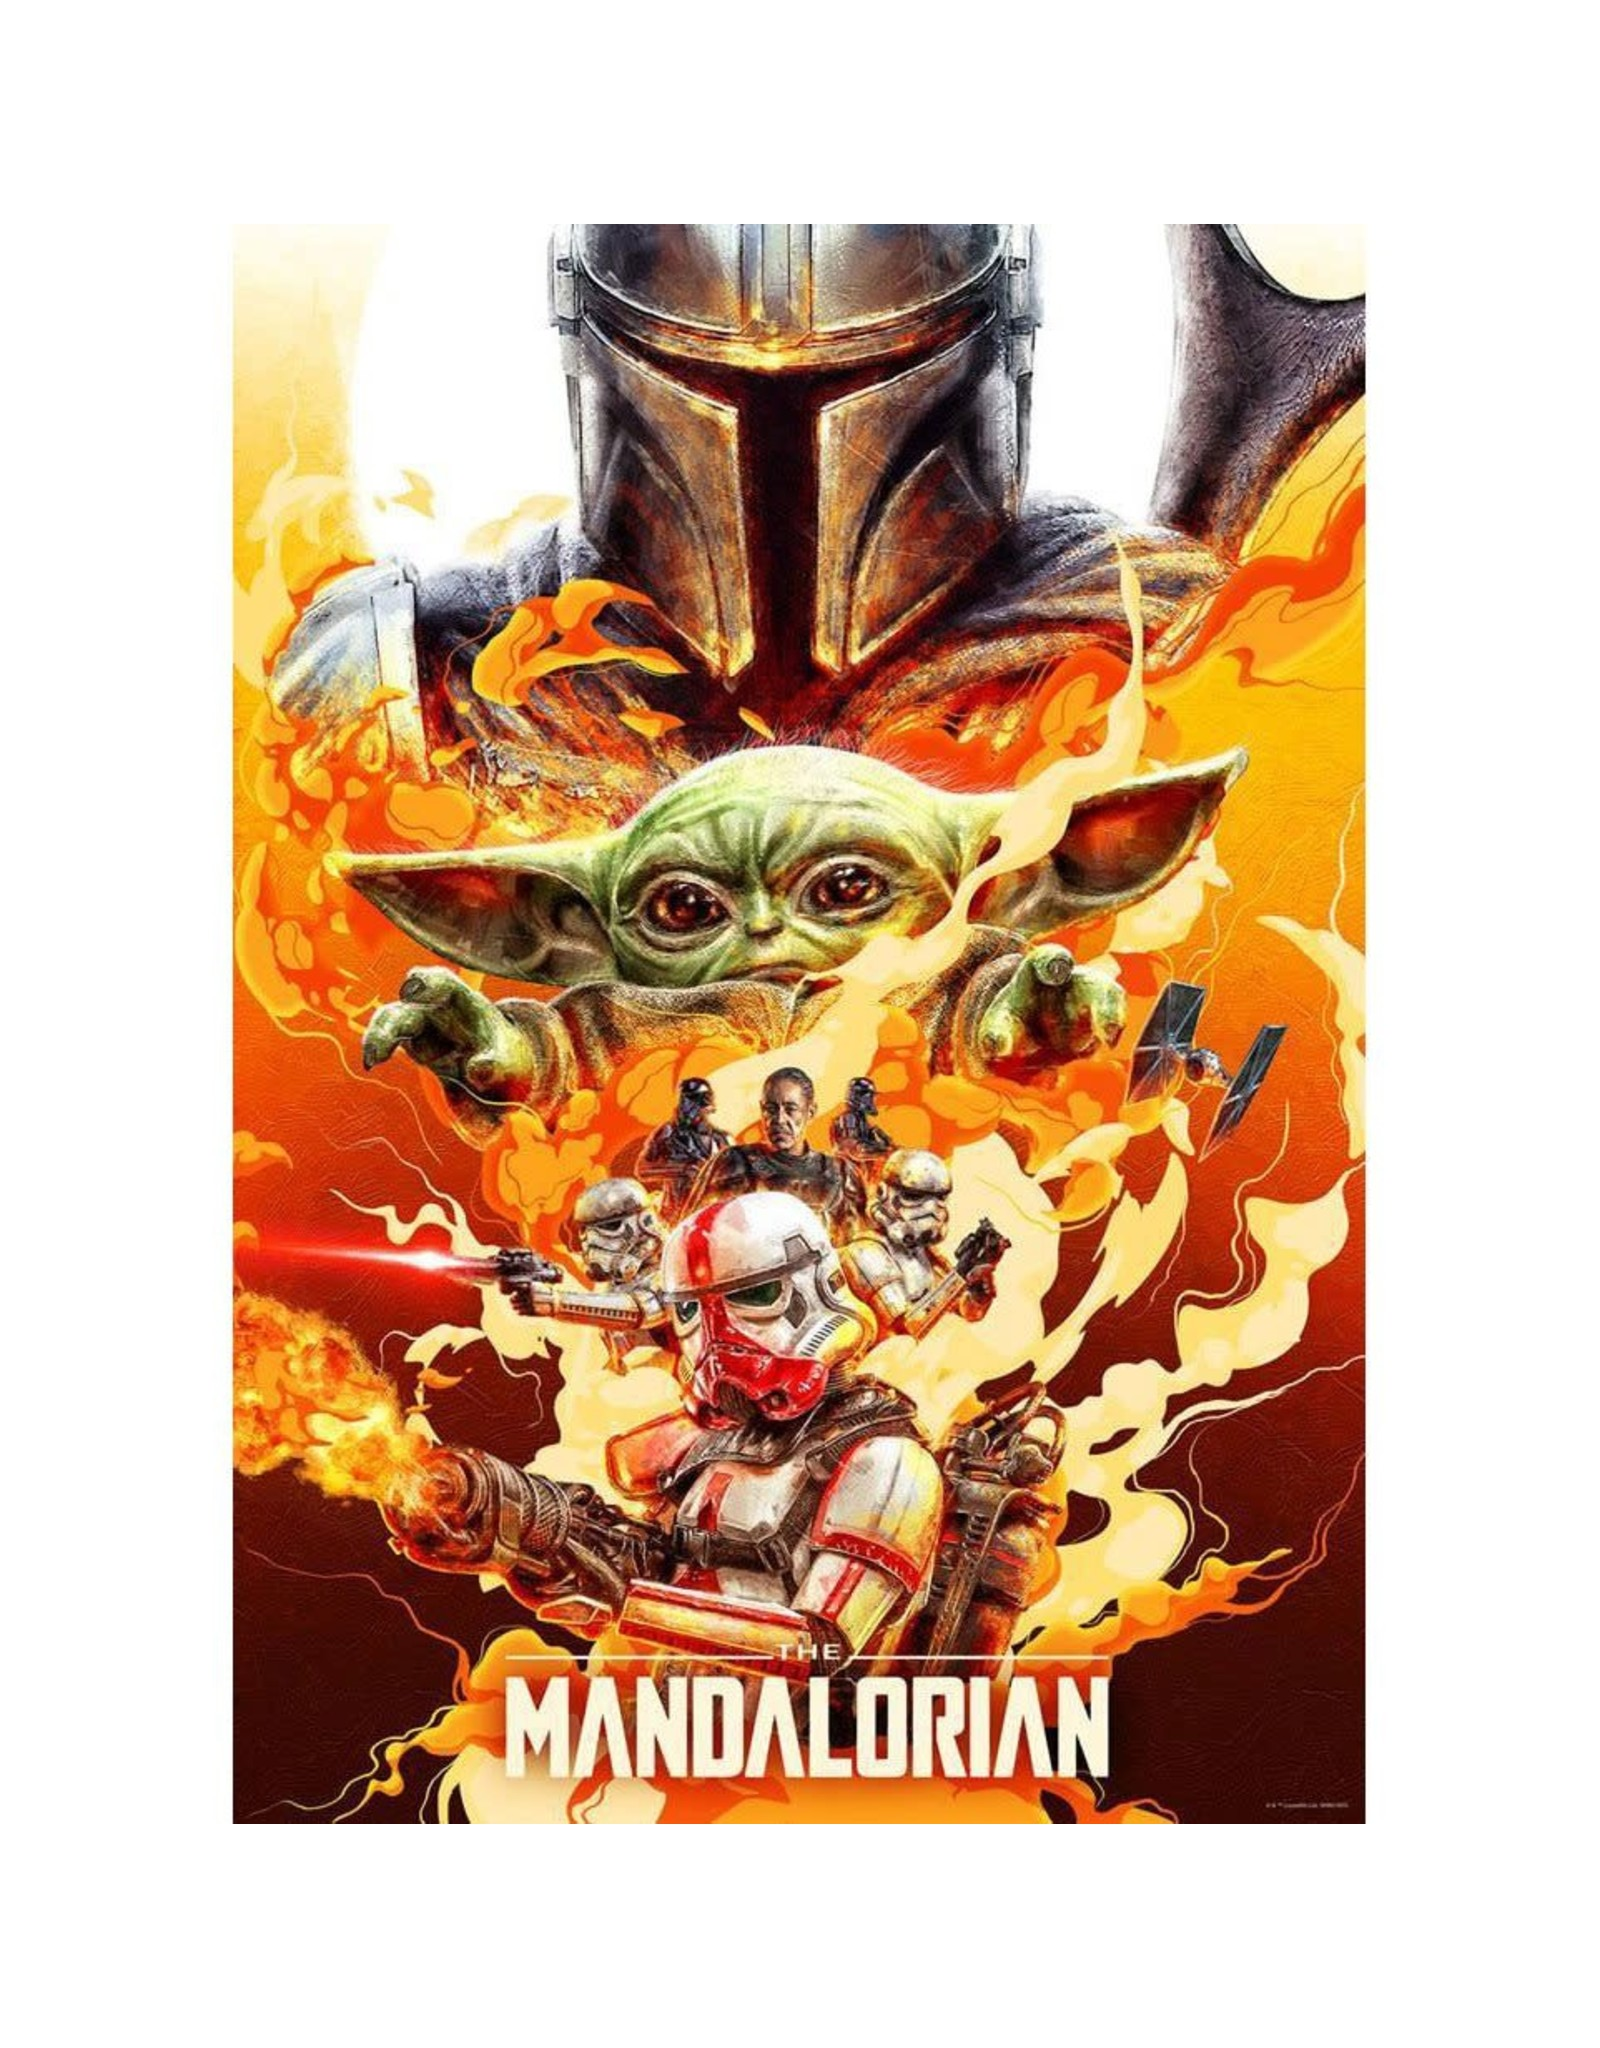 ACME Archives Star Wars: The Mandalorian Redemption by Chris Christodoulou Lithograph Art Print 17x24